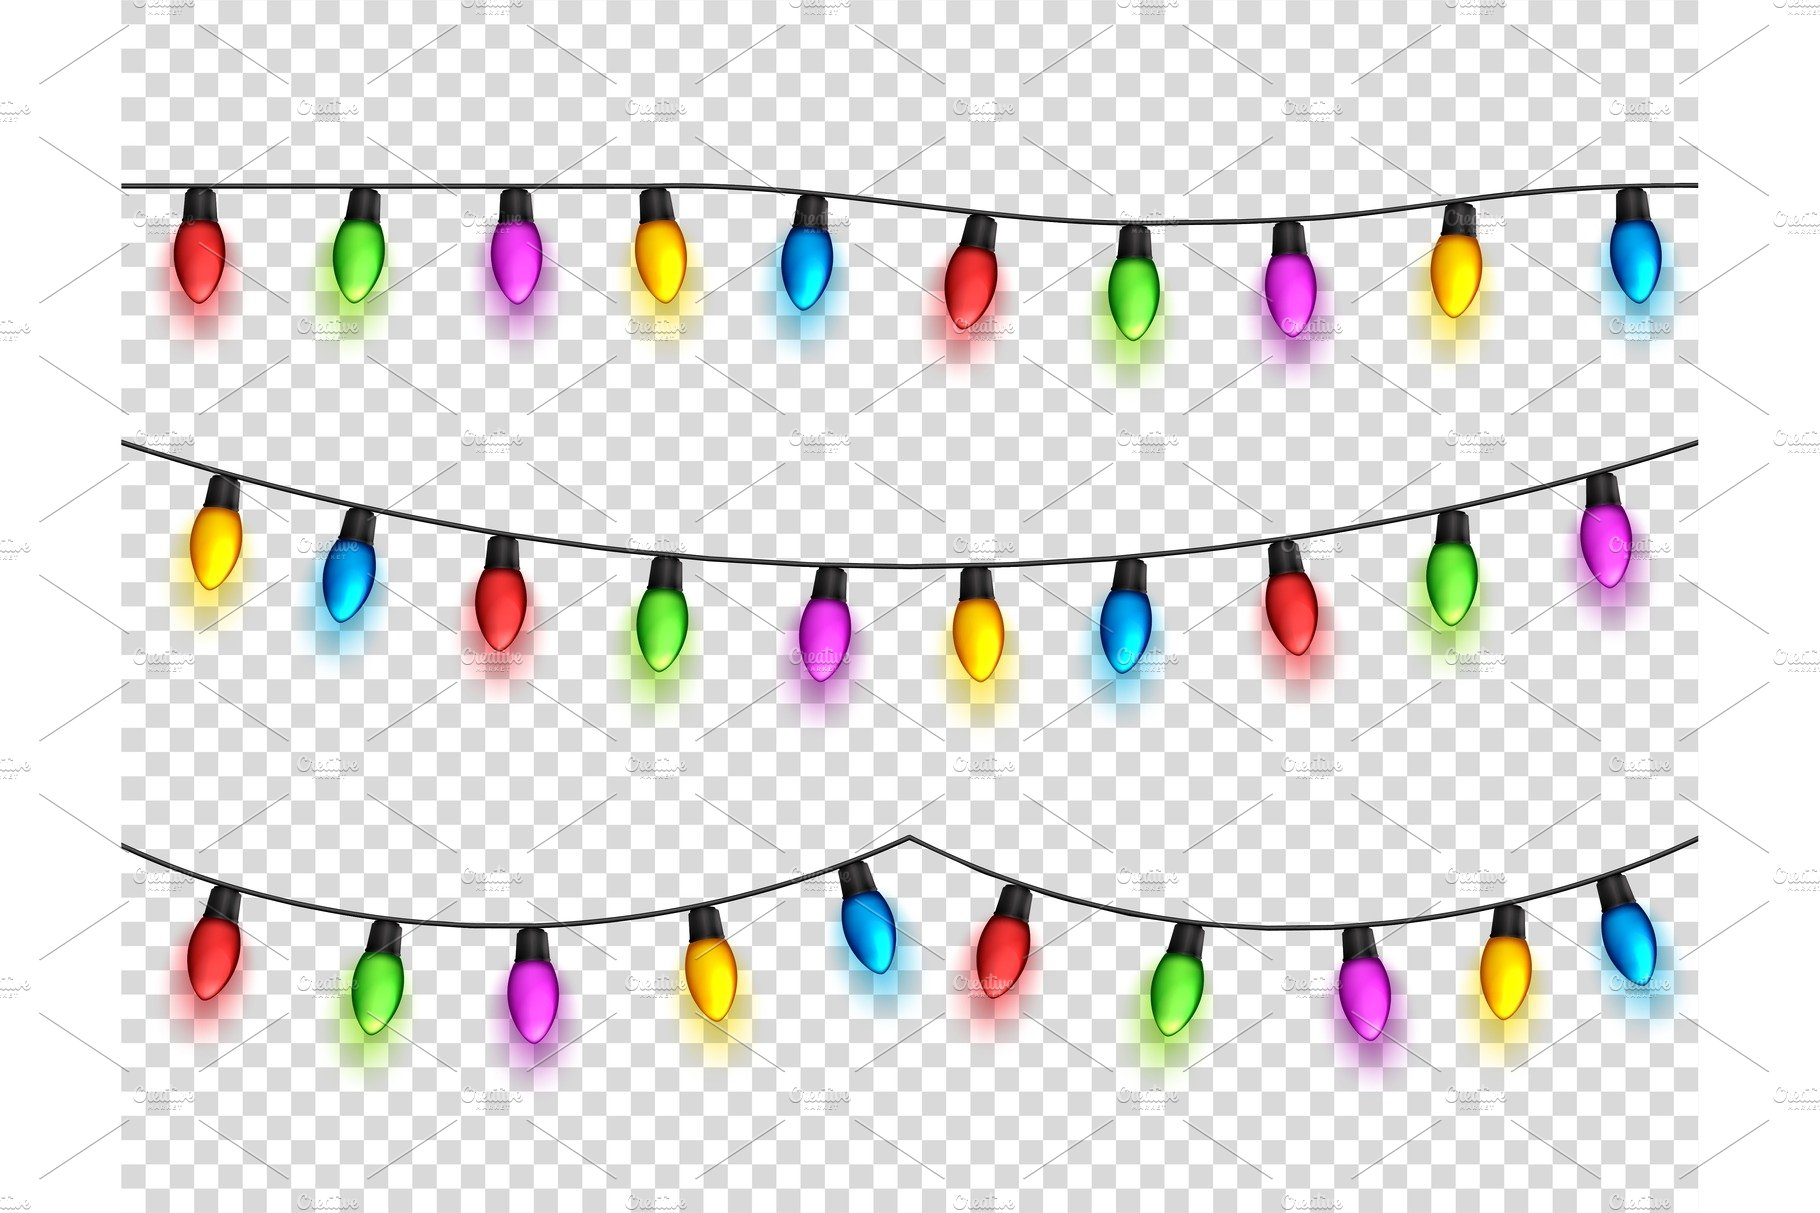 christmas glowing lights on transparent background garlands with colored bulbs xmas holidays